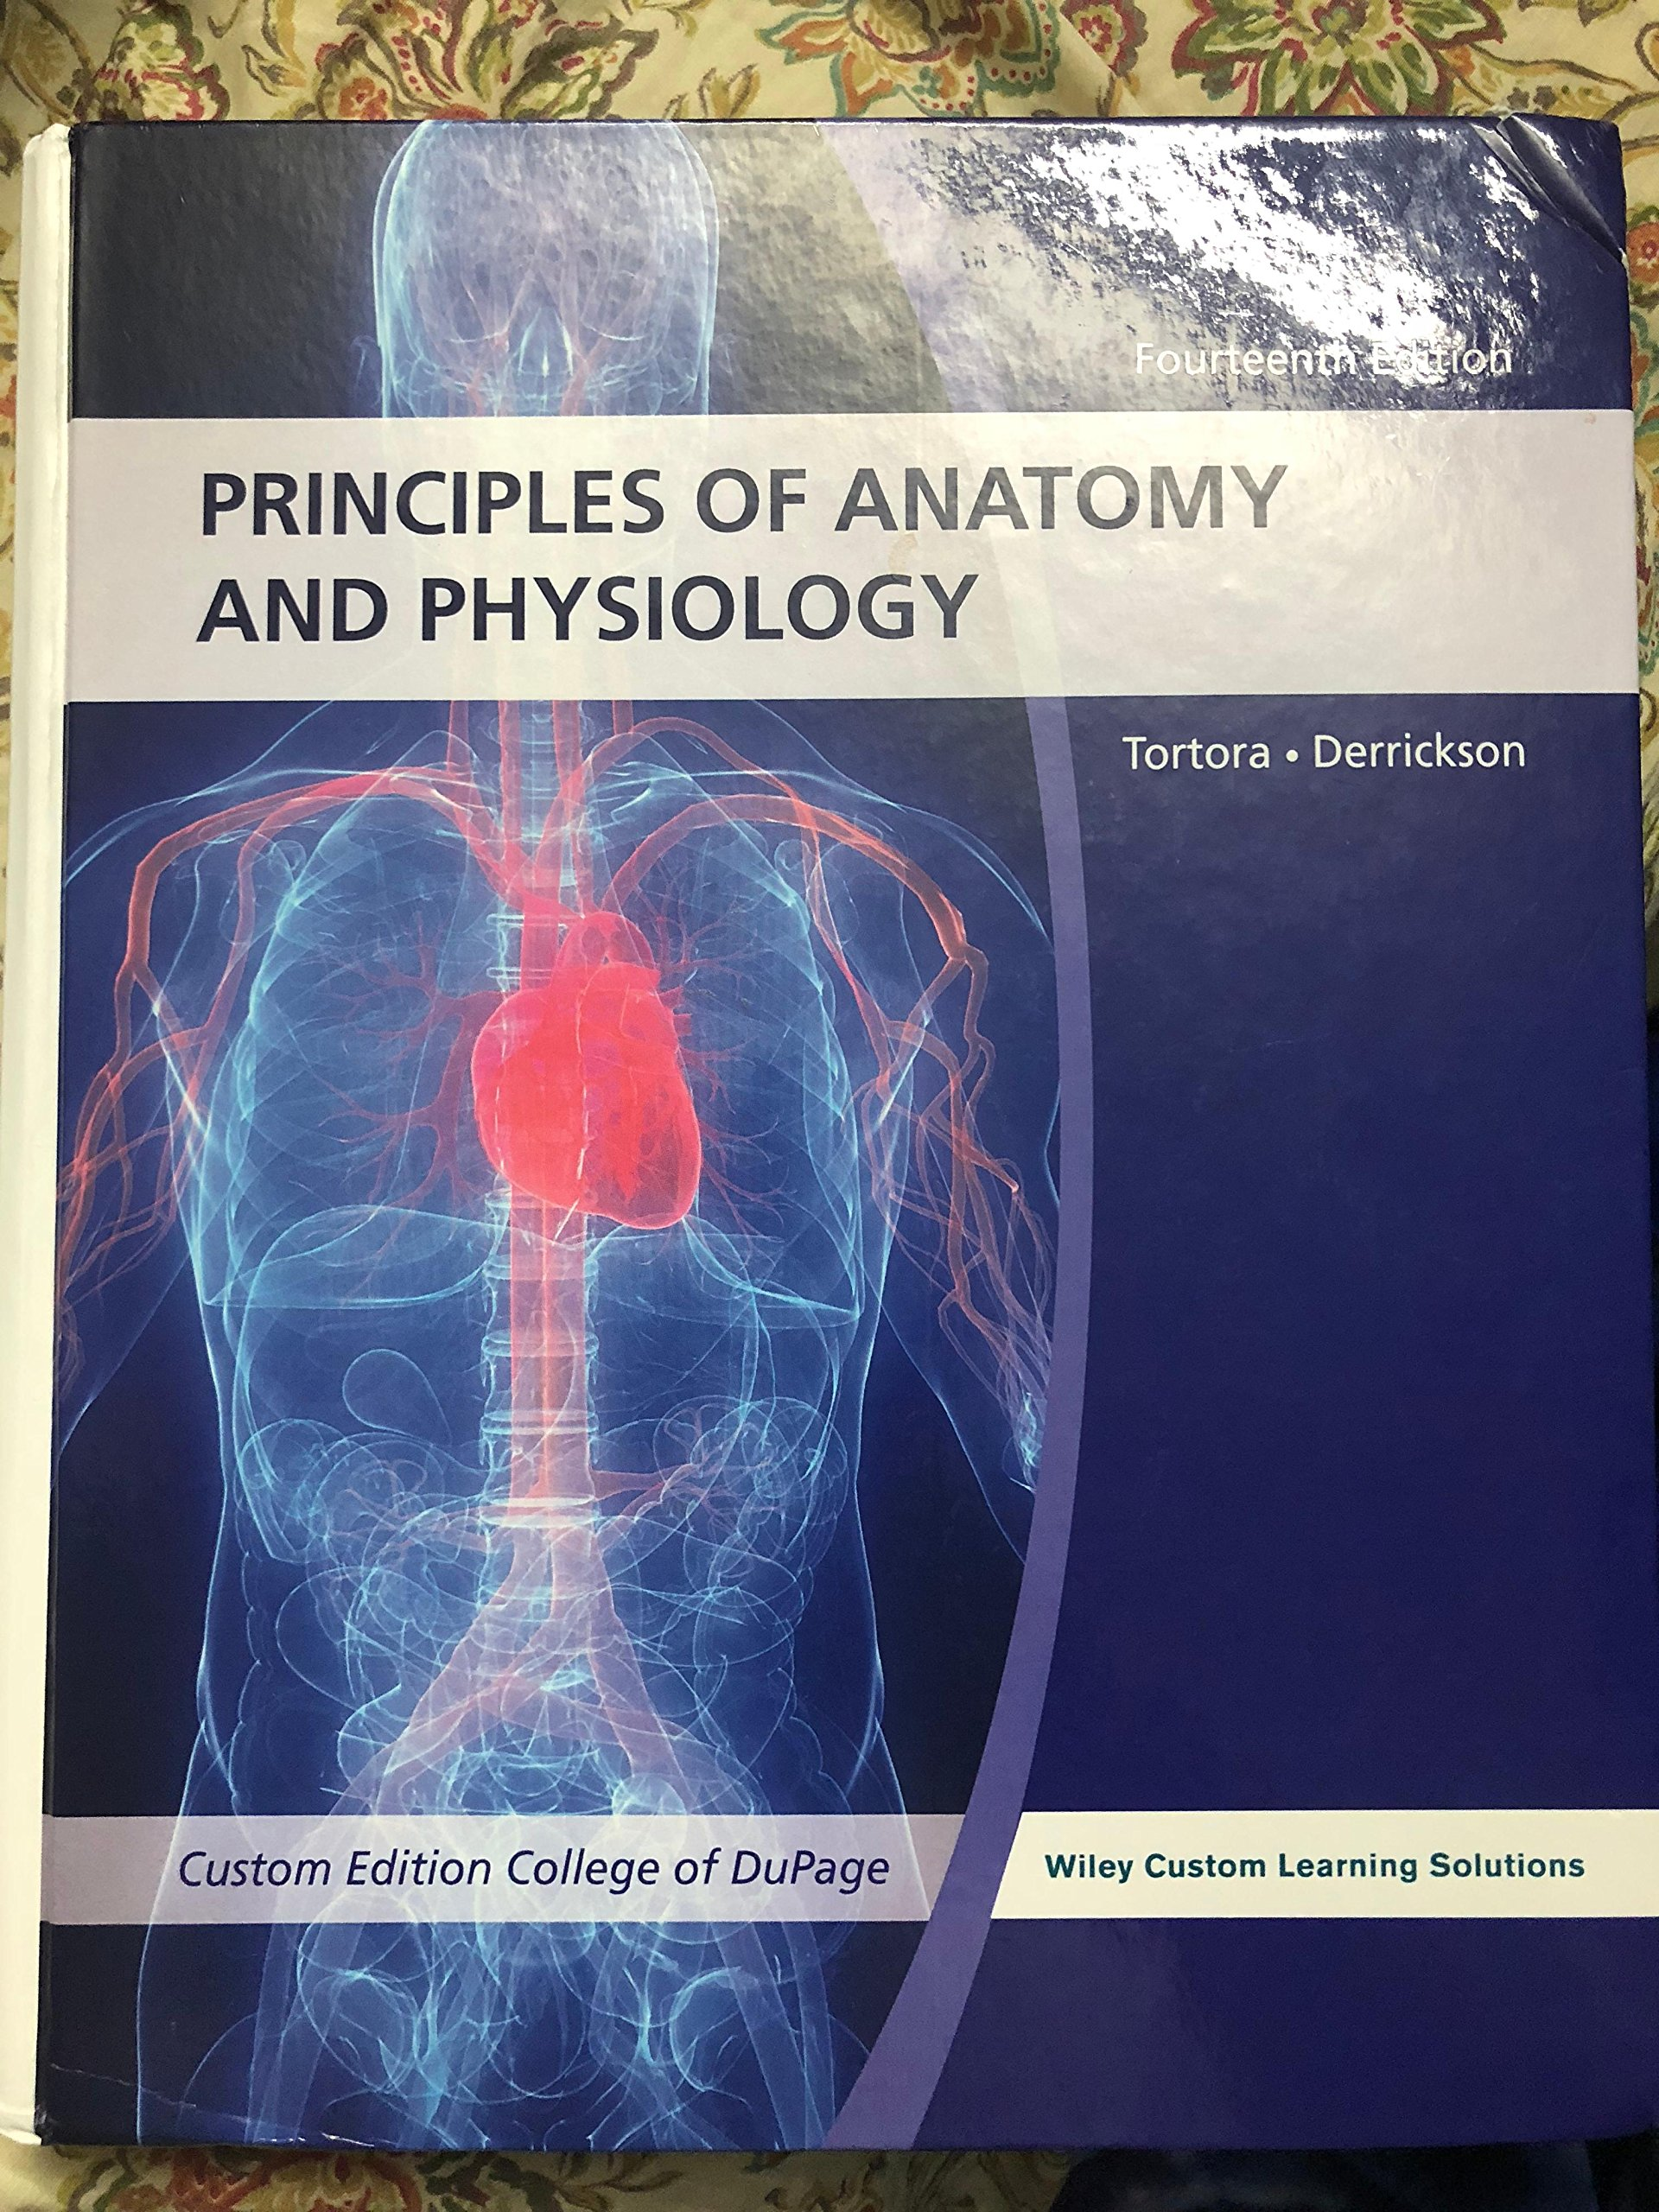 Principles Of Anatomy And Physiology, 14th Edition (WileyPLUS Access Code):  Gerard J. Tortora, Bryan H. Derrickson: 9781118808979: Amazon.com: Books